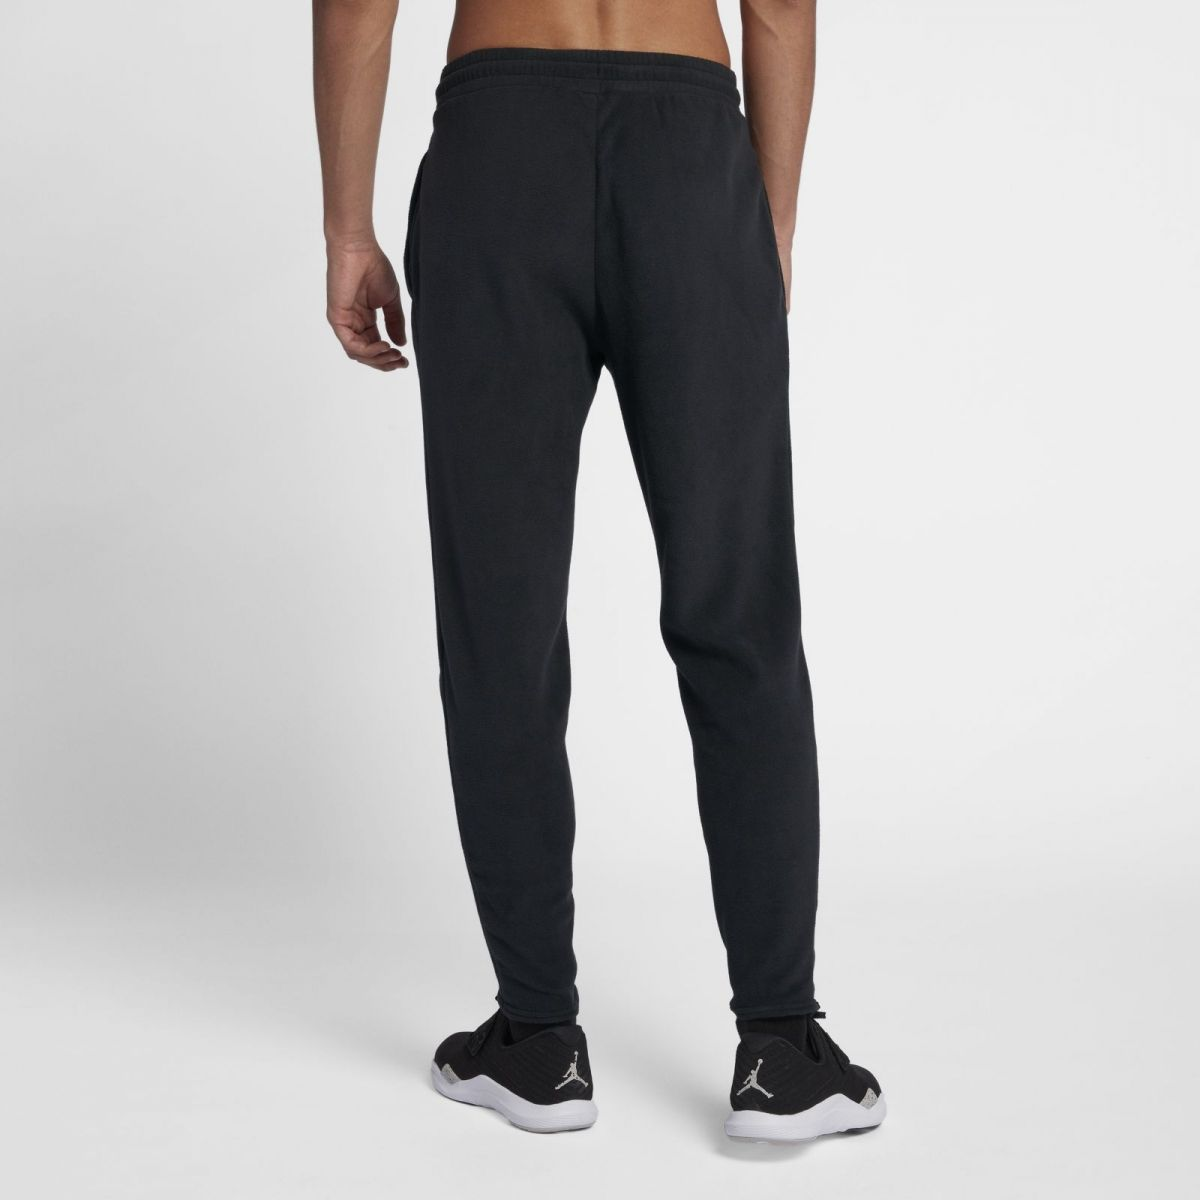 ba2dec688cc3f4 Type Pants Jordan Therma 23 Alpha Training Pants